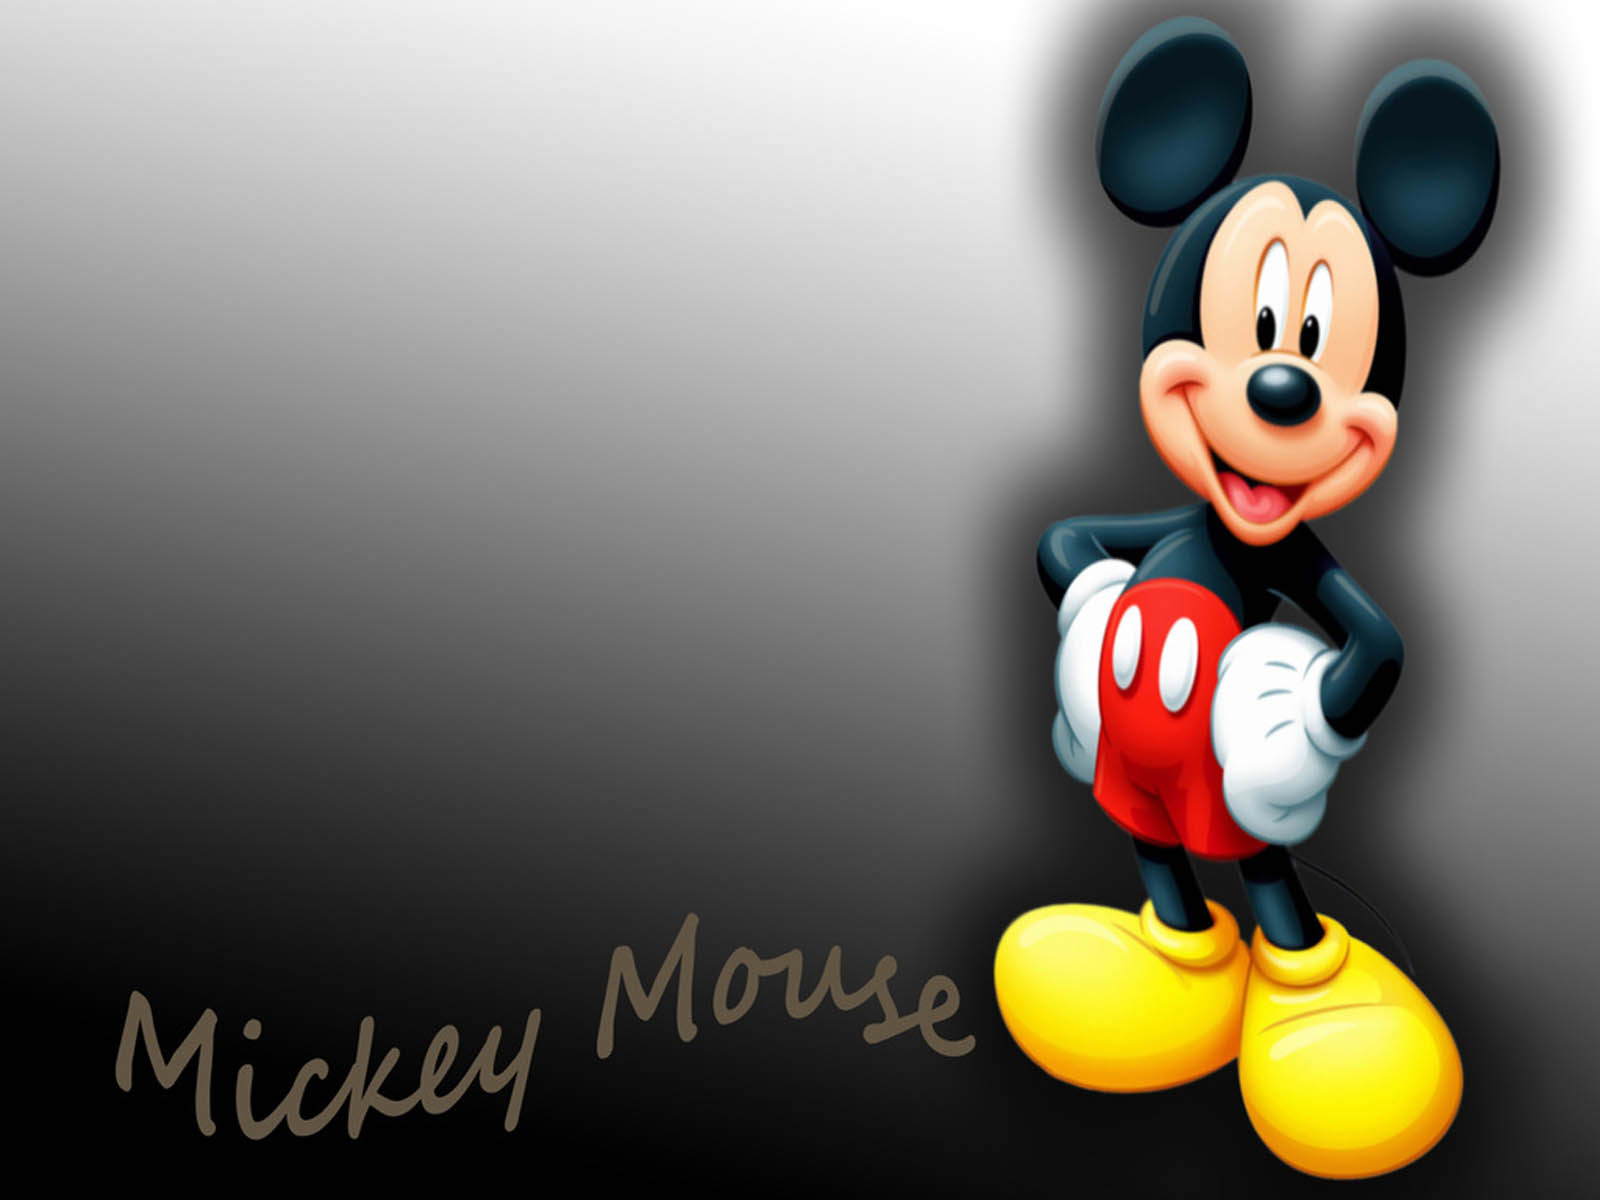 Mickey Mouse Wallpaper Android Www Jakubmroz Com